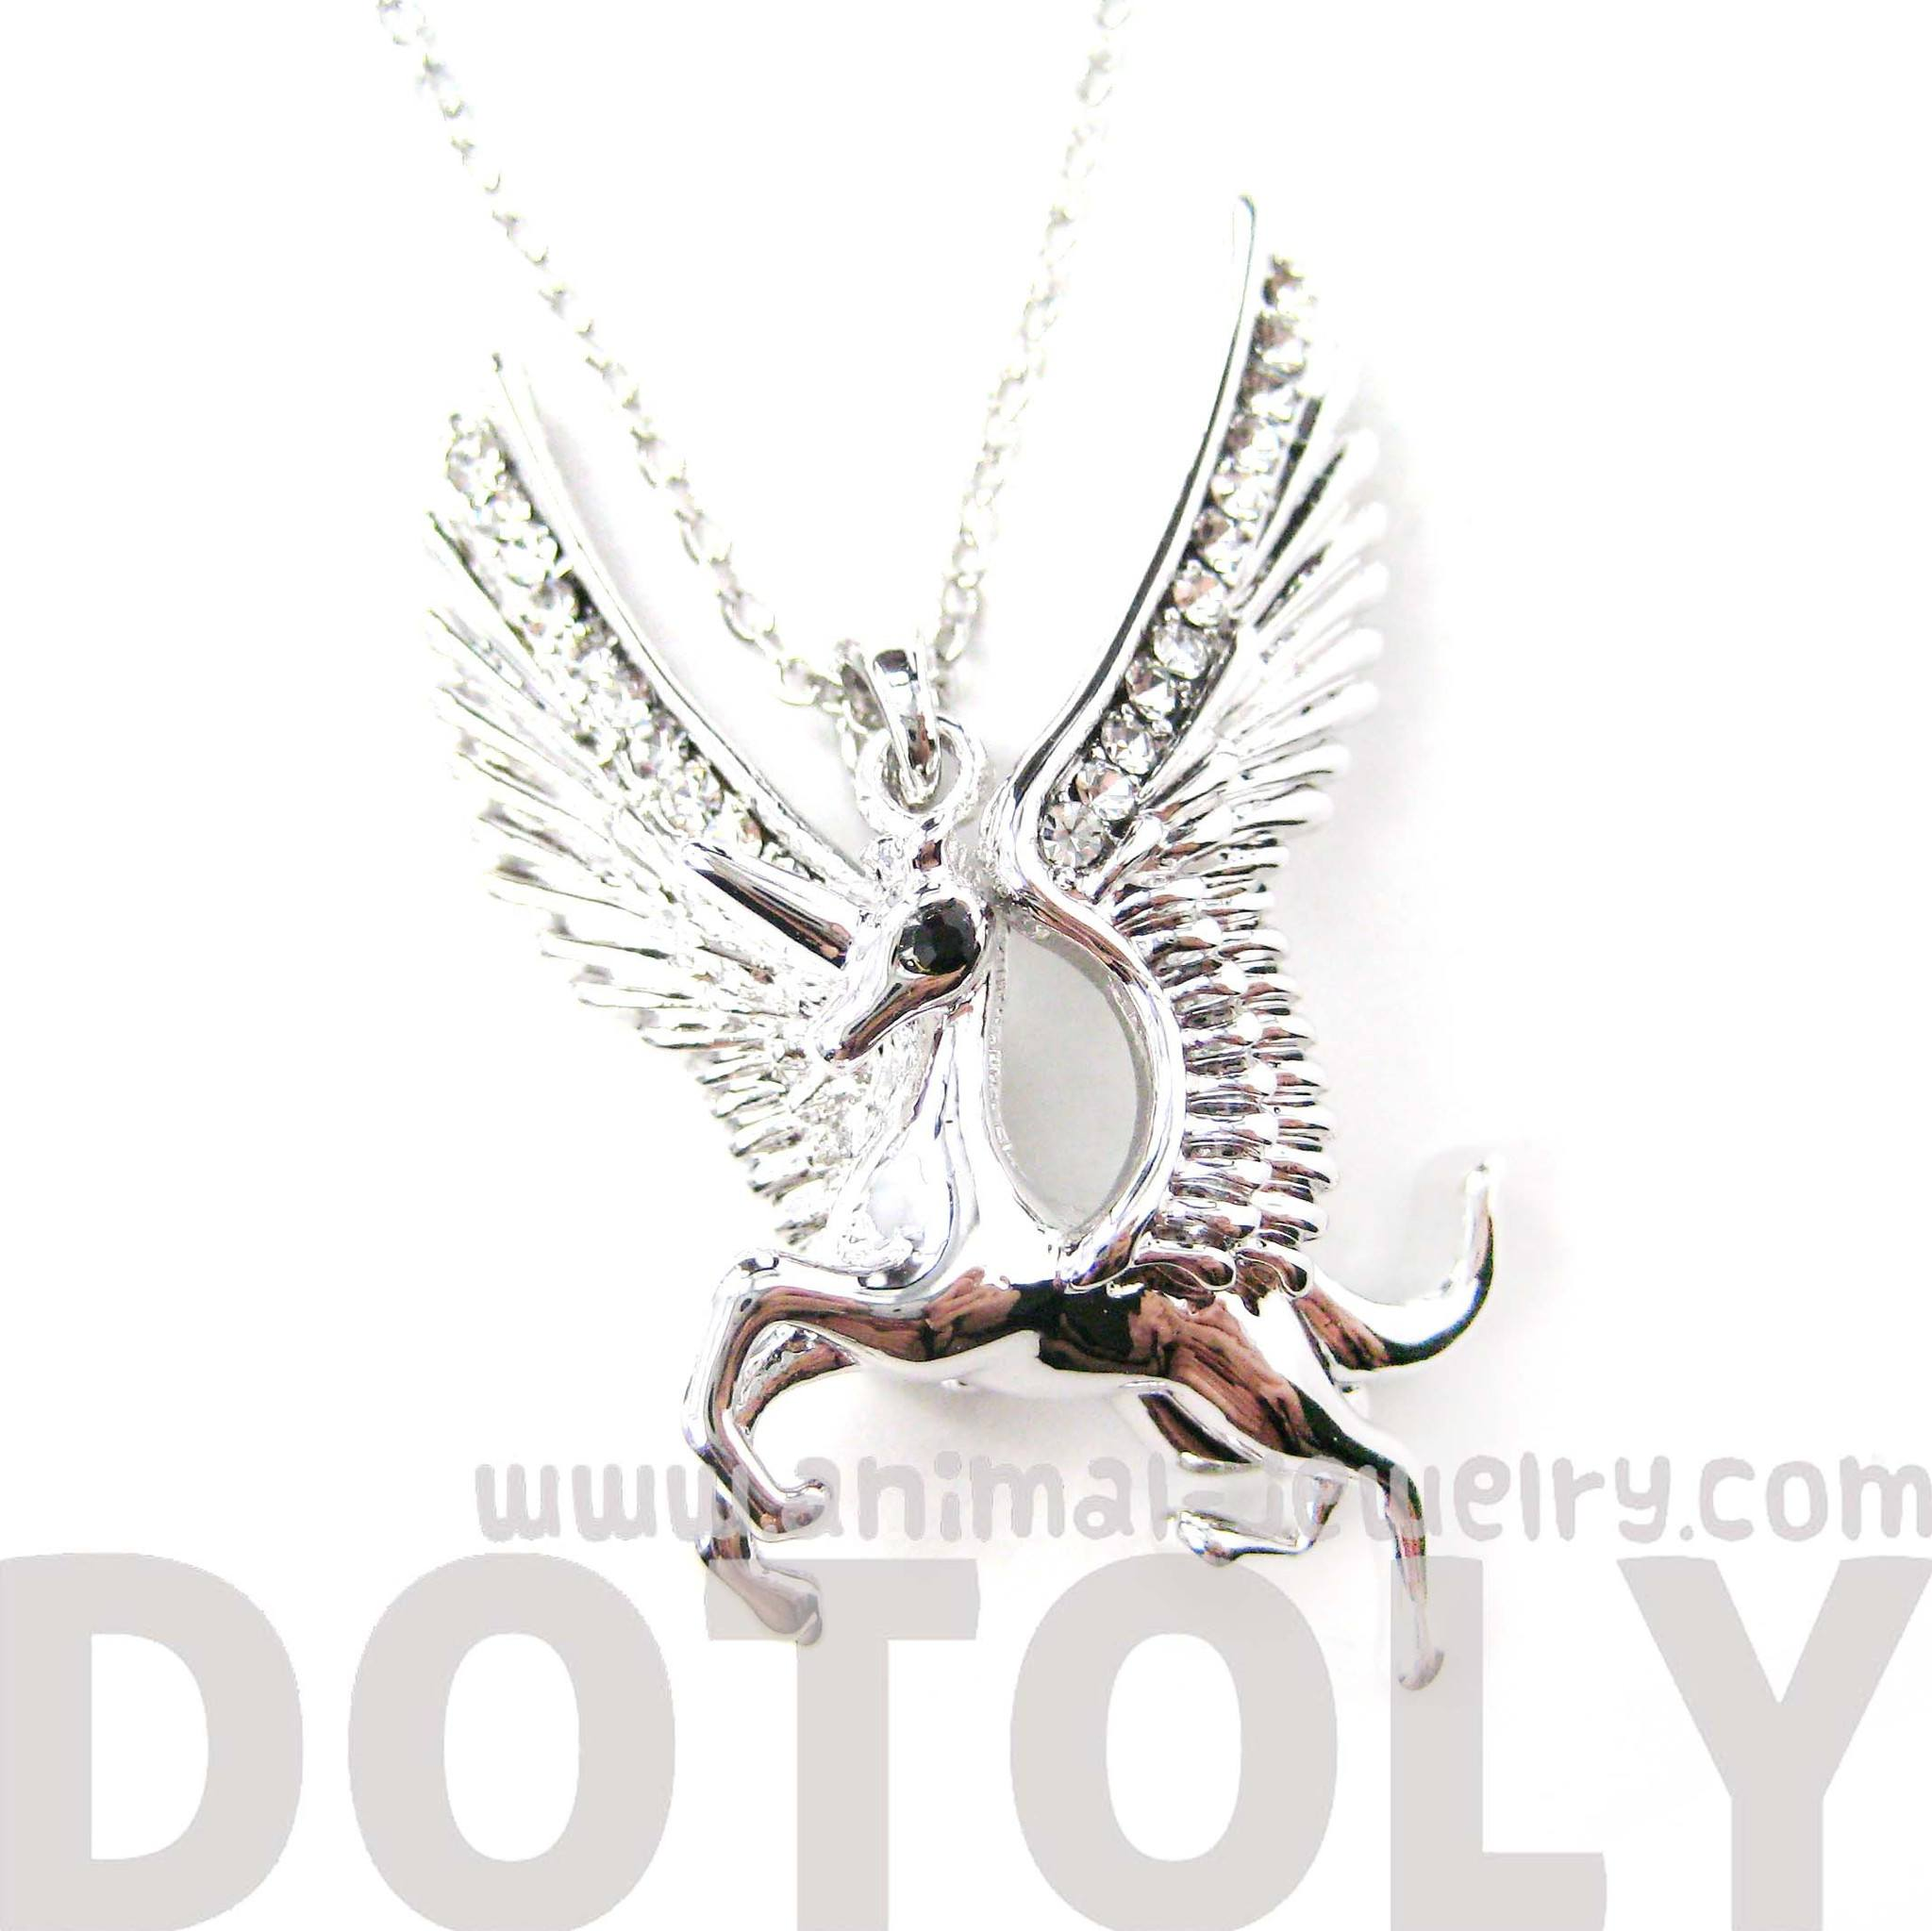 unicorn-horse-animal-pendant-necklace-in-silver-with-large-wings-animal-jewelry